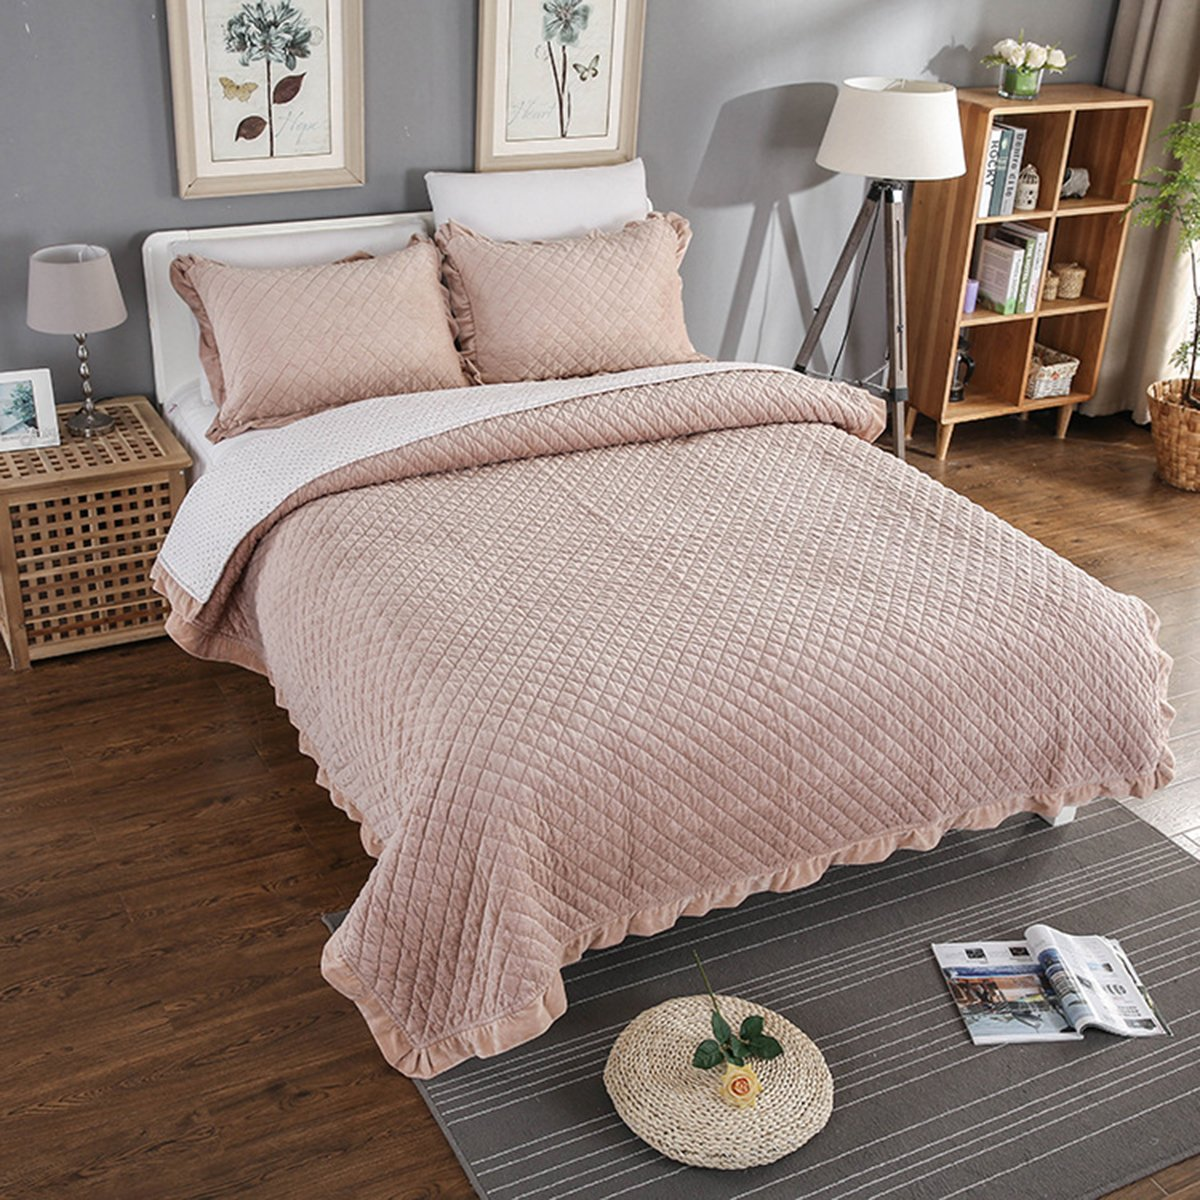 S Hotel Collection Flannel Fleece 3-Piece Solid Oversized Bedspread Riversible Embossed Coverlet Set